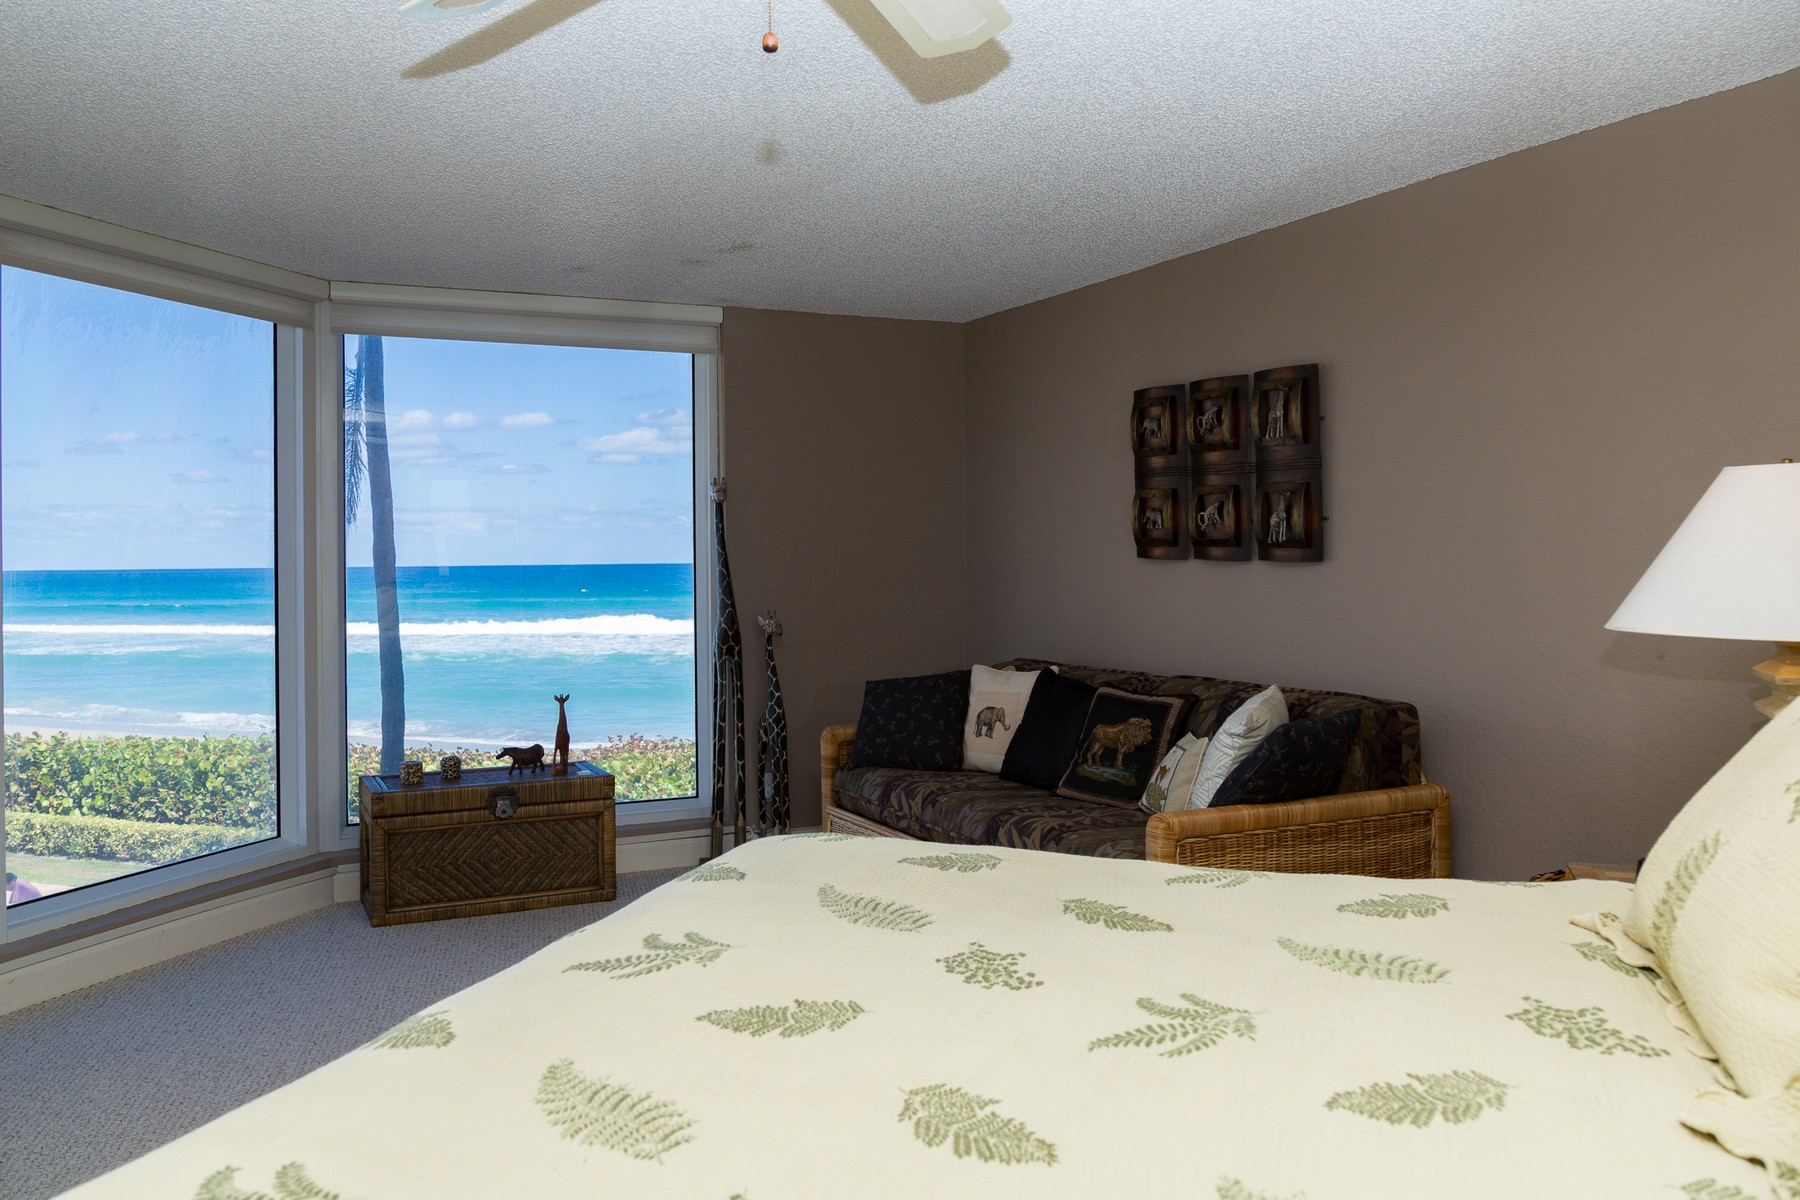 Townhouse for Active at 2575 S Ocean Blvd , 105s, Highland Beach, FL 33487 2575 S Ocean Blvd 105s Highland Beach, Florida 33487 United States